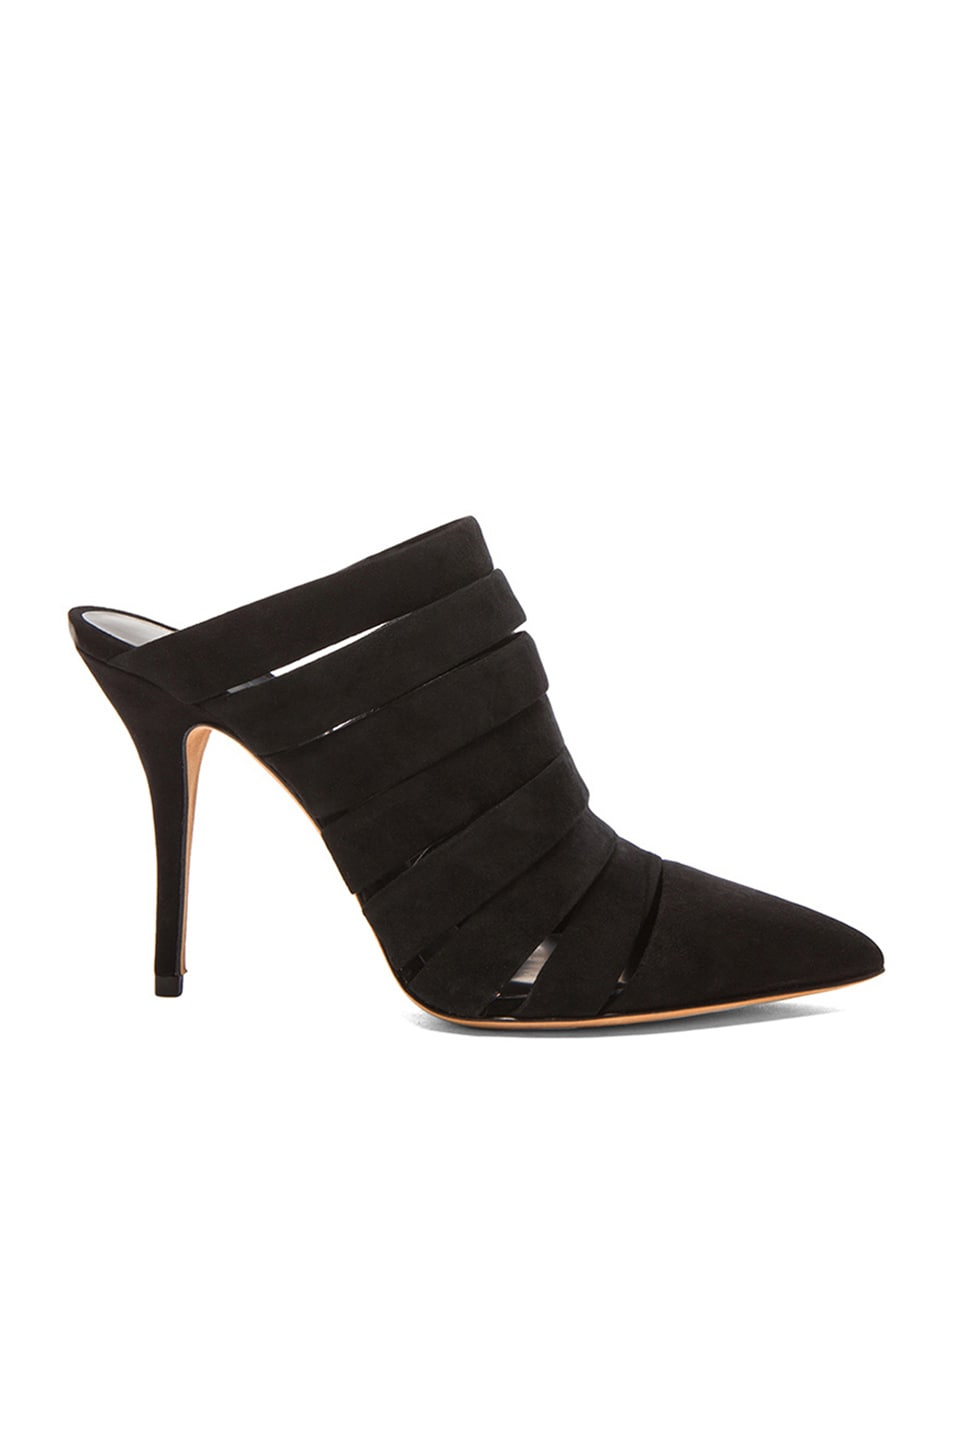 Image 1 of Alexander Wang Britt Suede Mules in Black